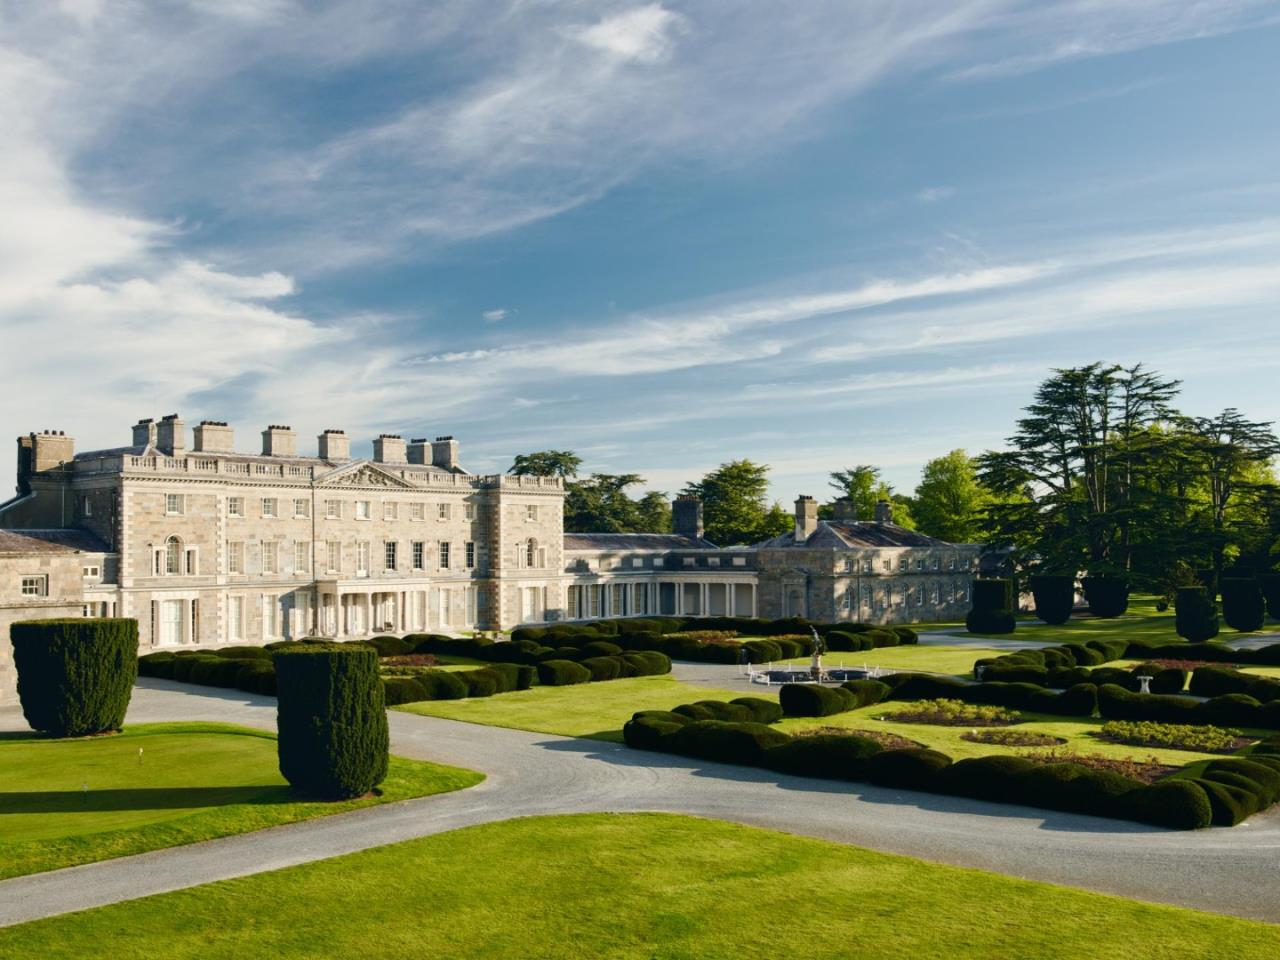 Carton House Hotel & Golf Club 4* - 1 Night Bed & Breakfast, 2 Rounds